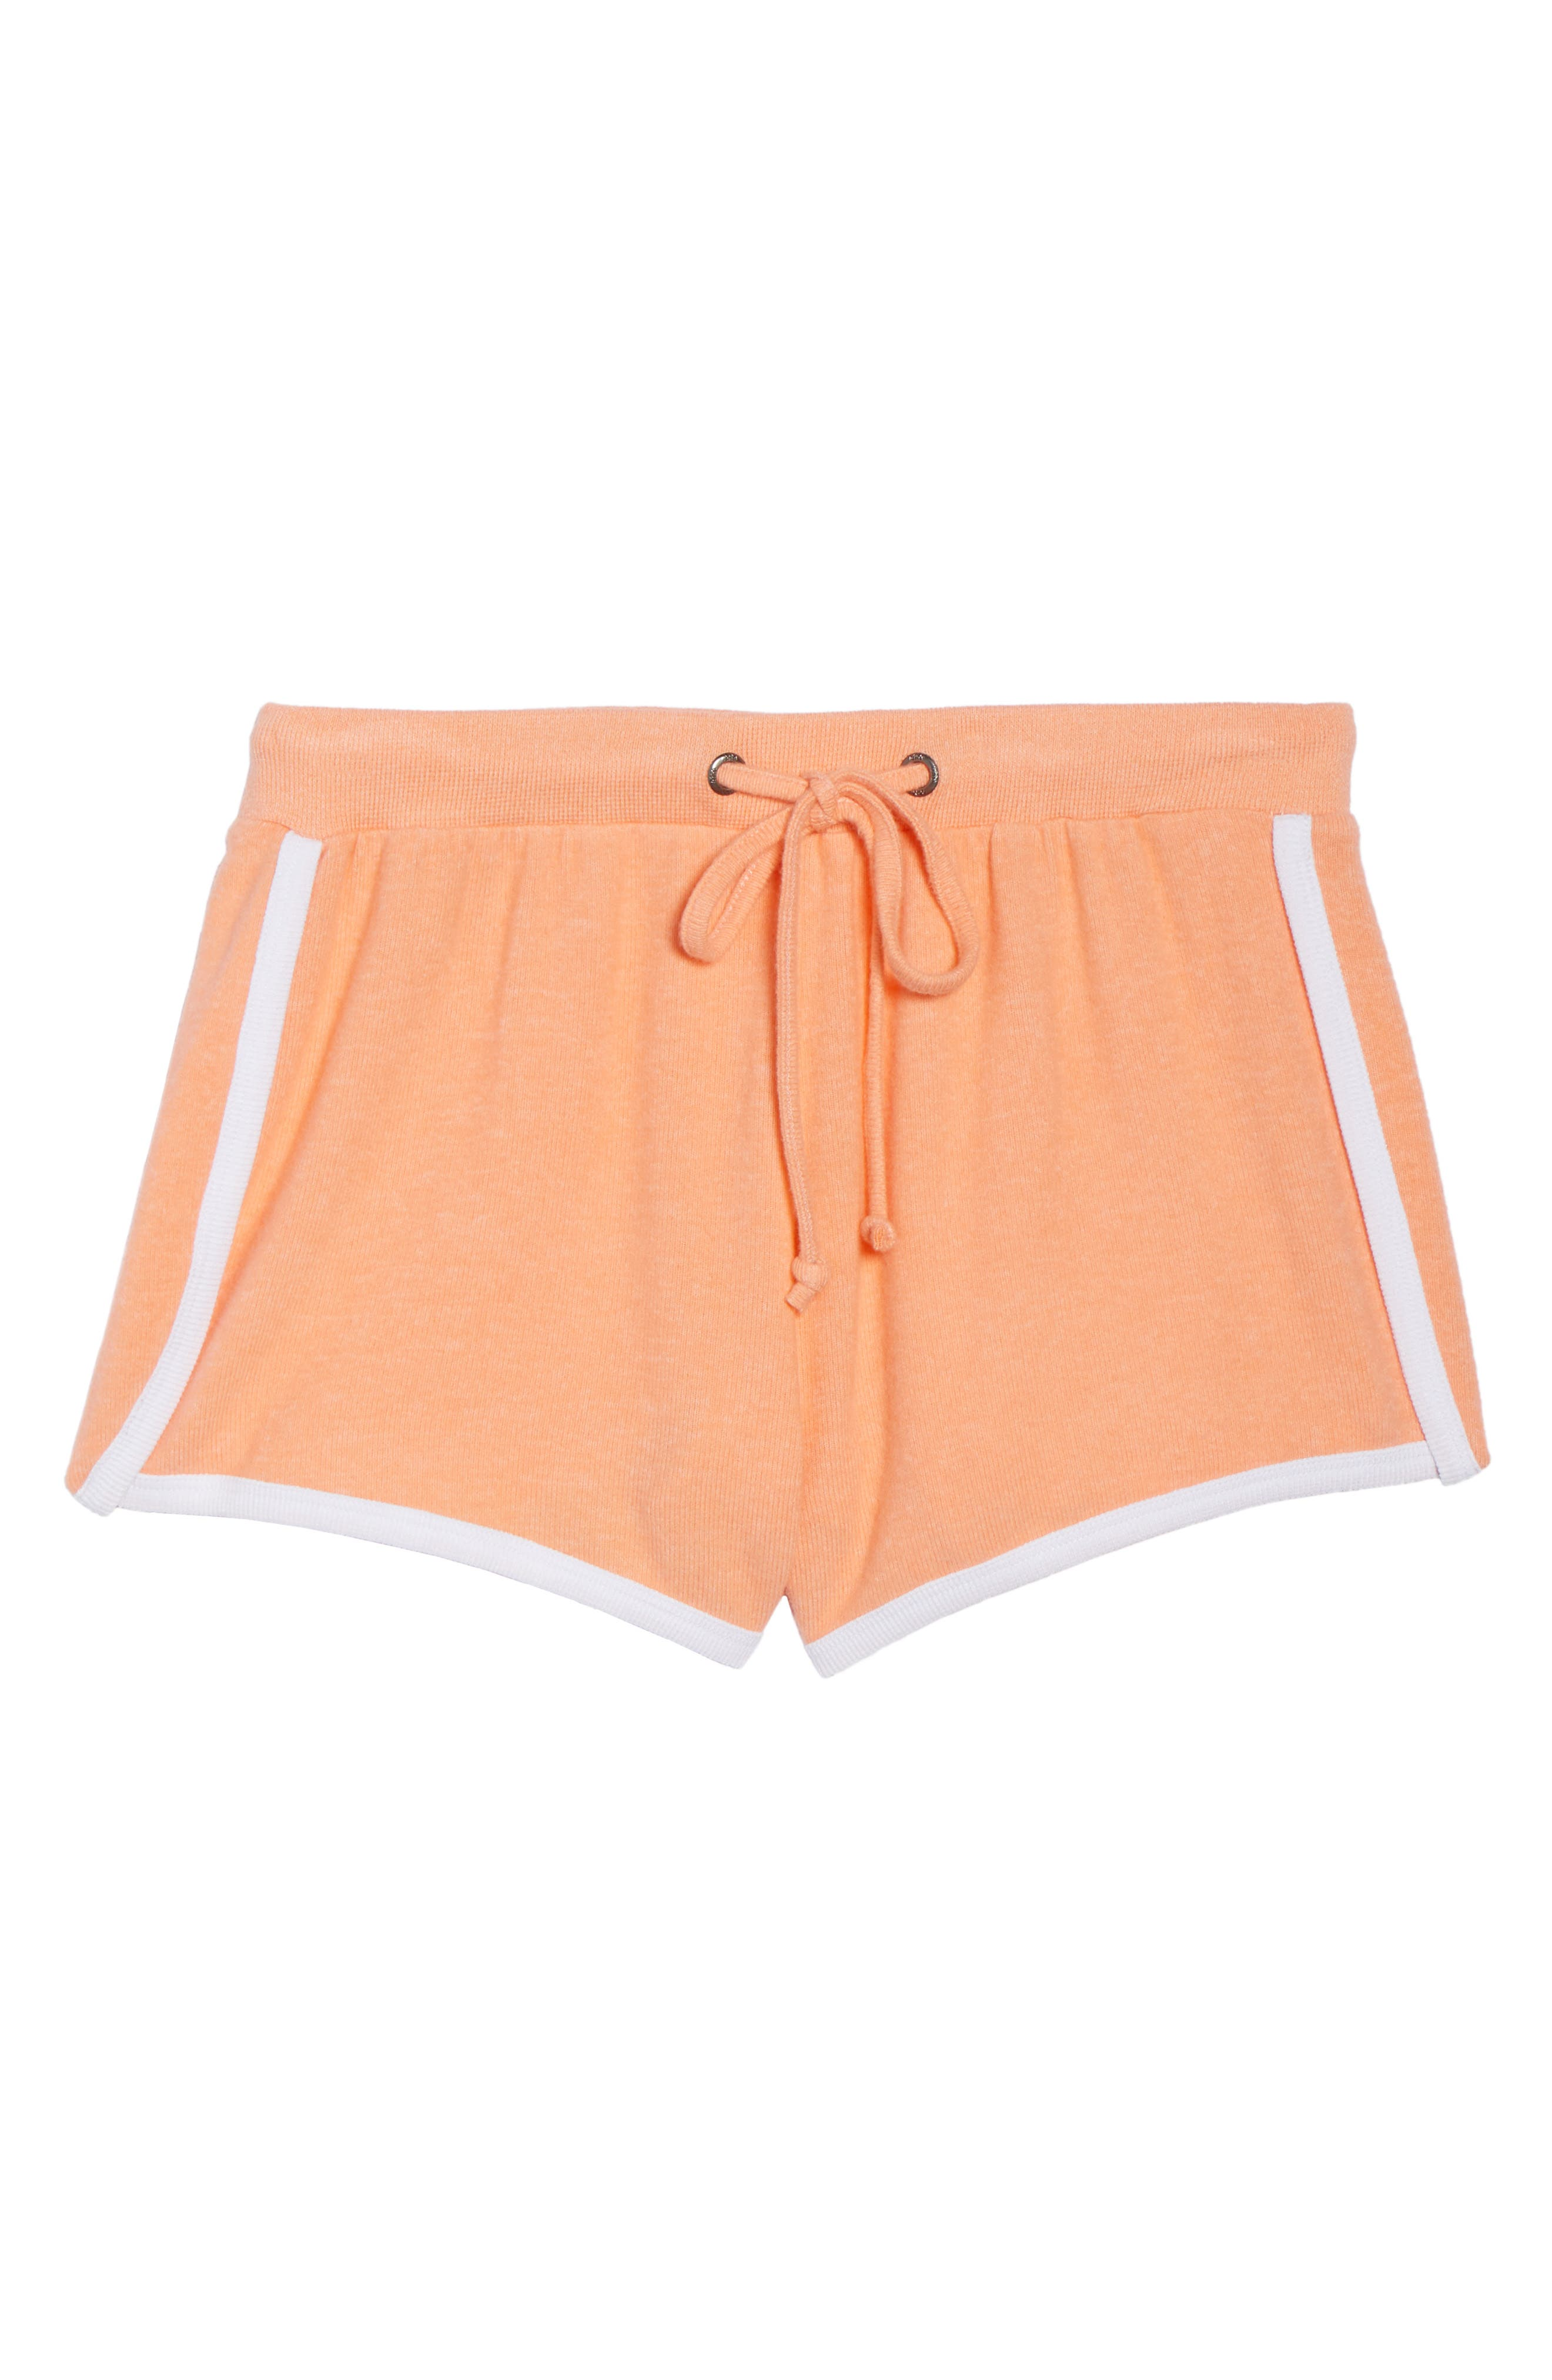 Too Cool Shorts,                             Alternate thumbnail 6, color,                             CORAL PINK